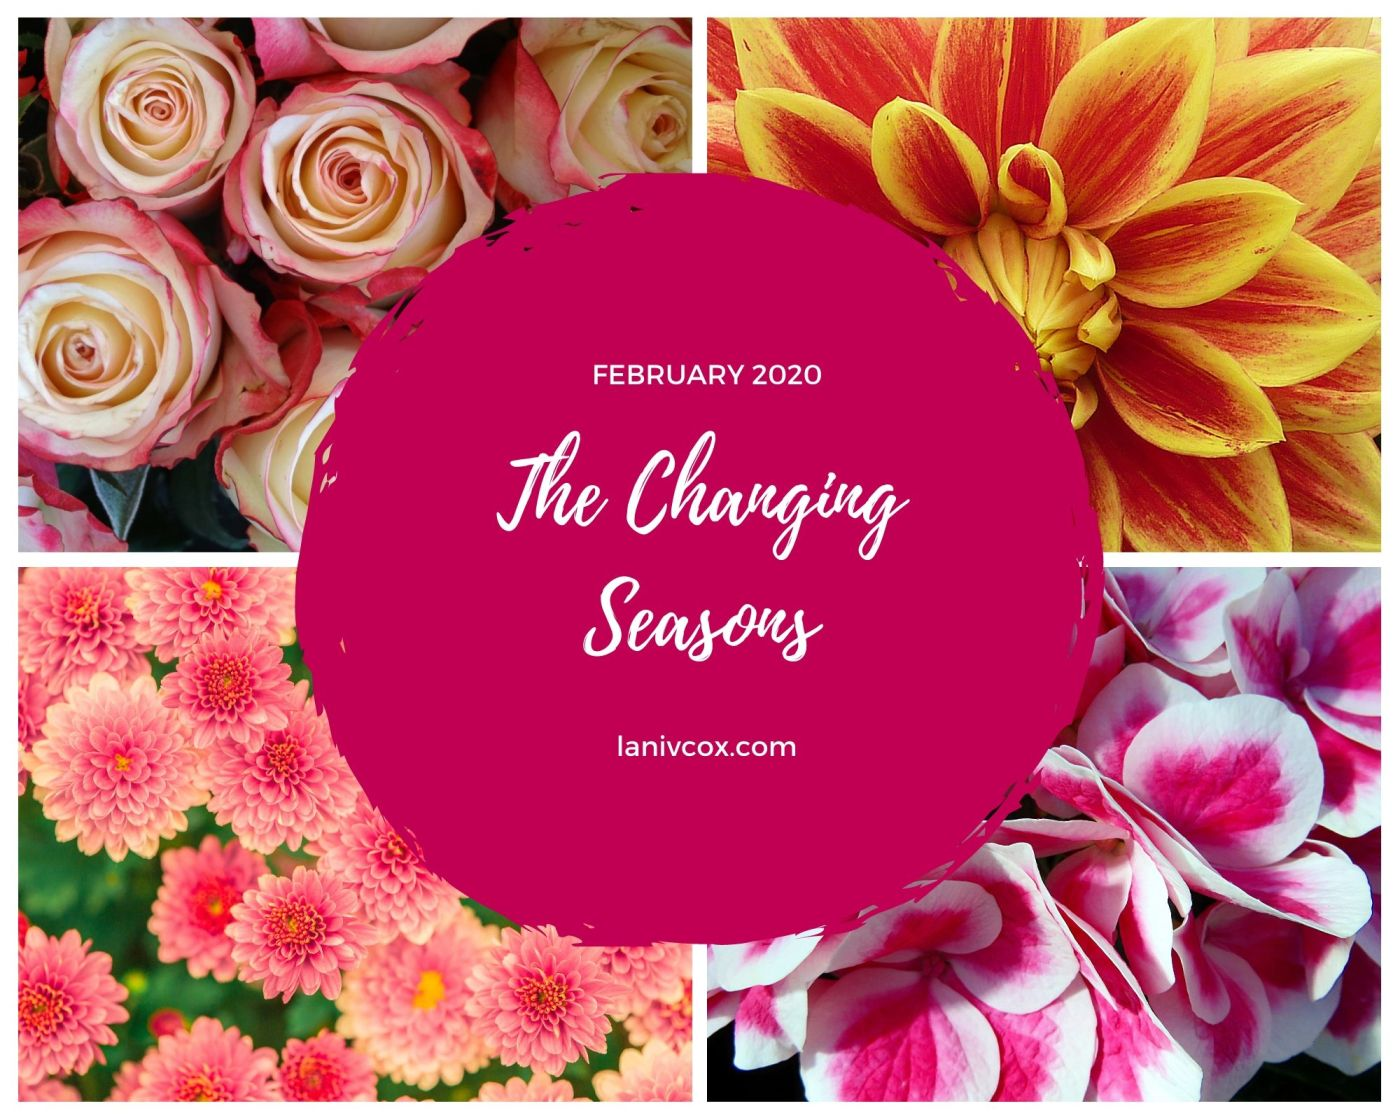 The Changing Seasons Feb 2020